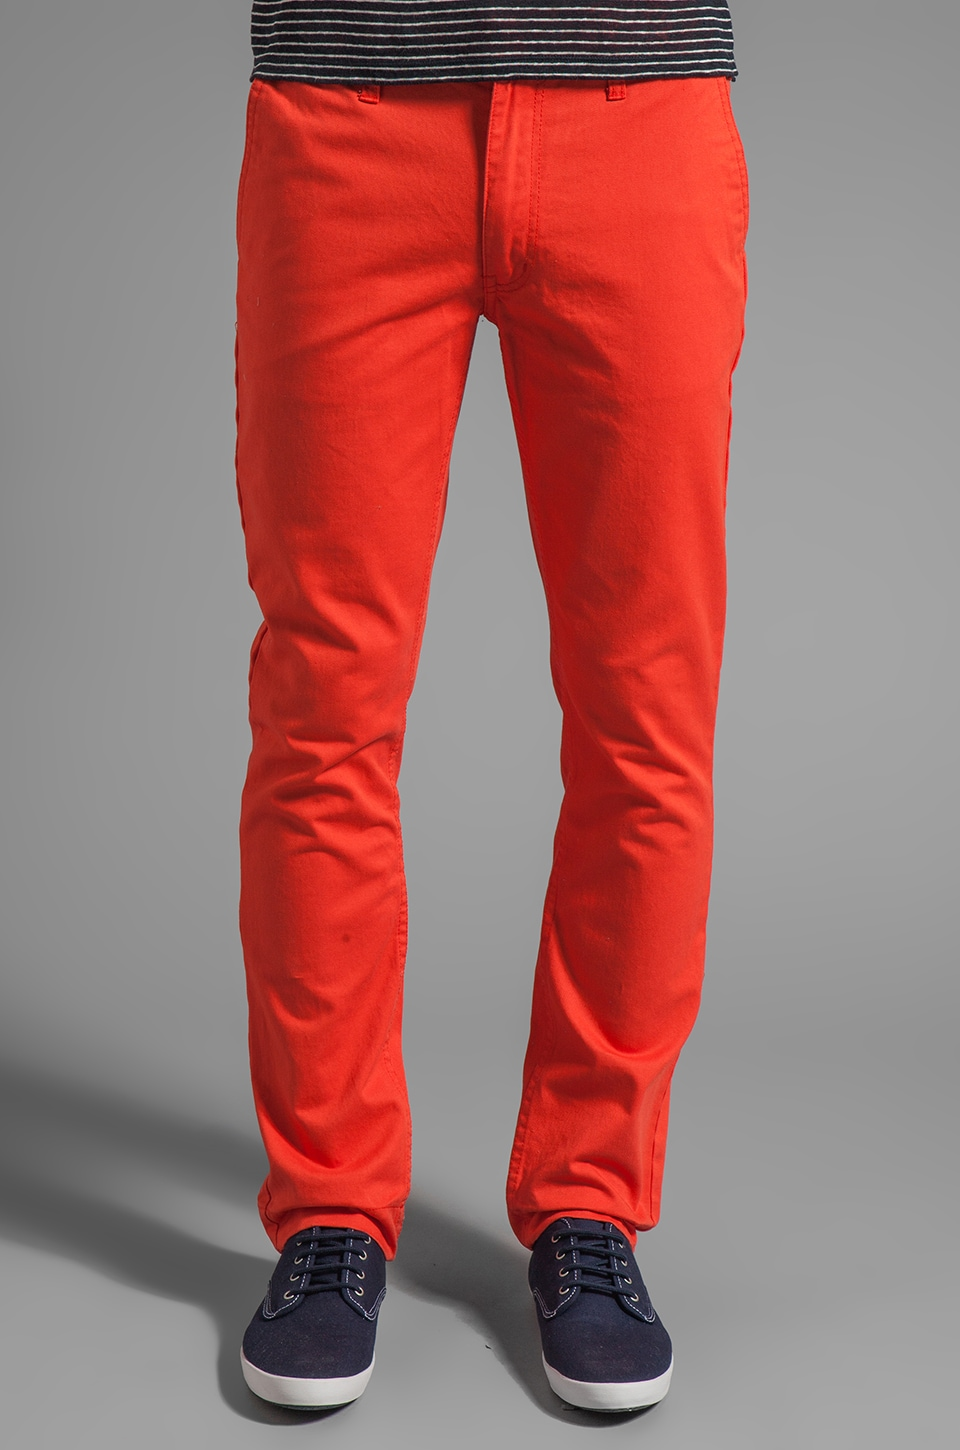 Cheap Monday Slim Chino Pants in Grenadine